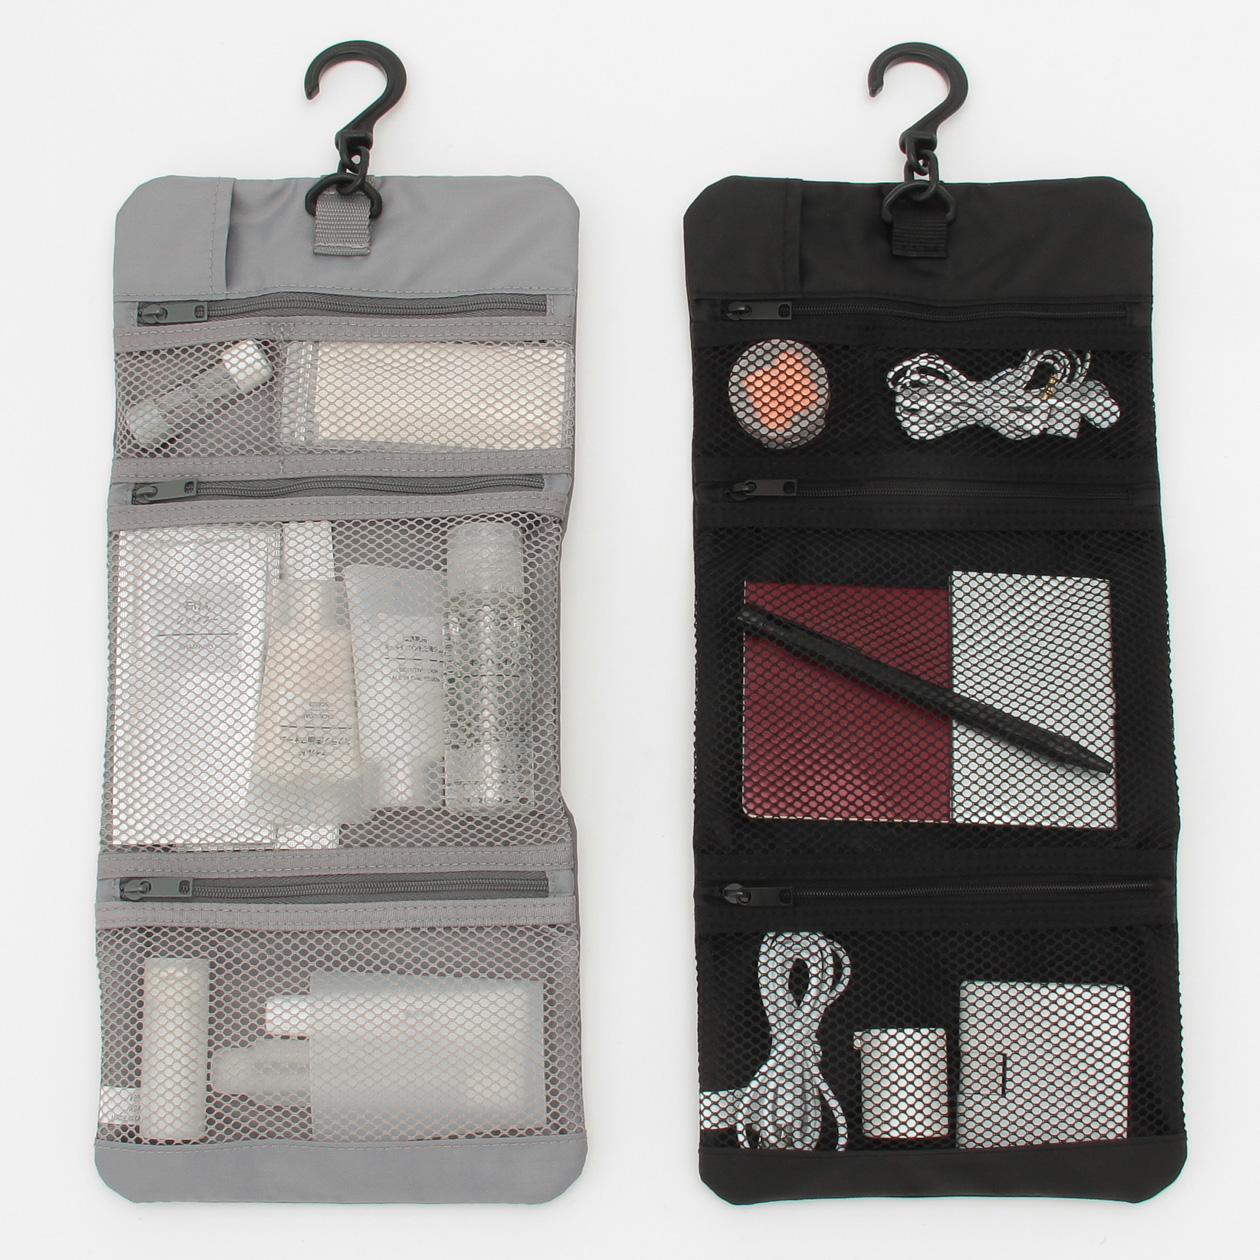 Hanging Case Pocket for Small Items. U.P. $23 | NOW 20% OFF till 29 May